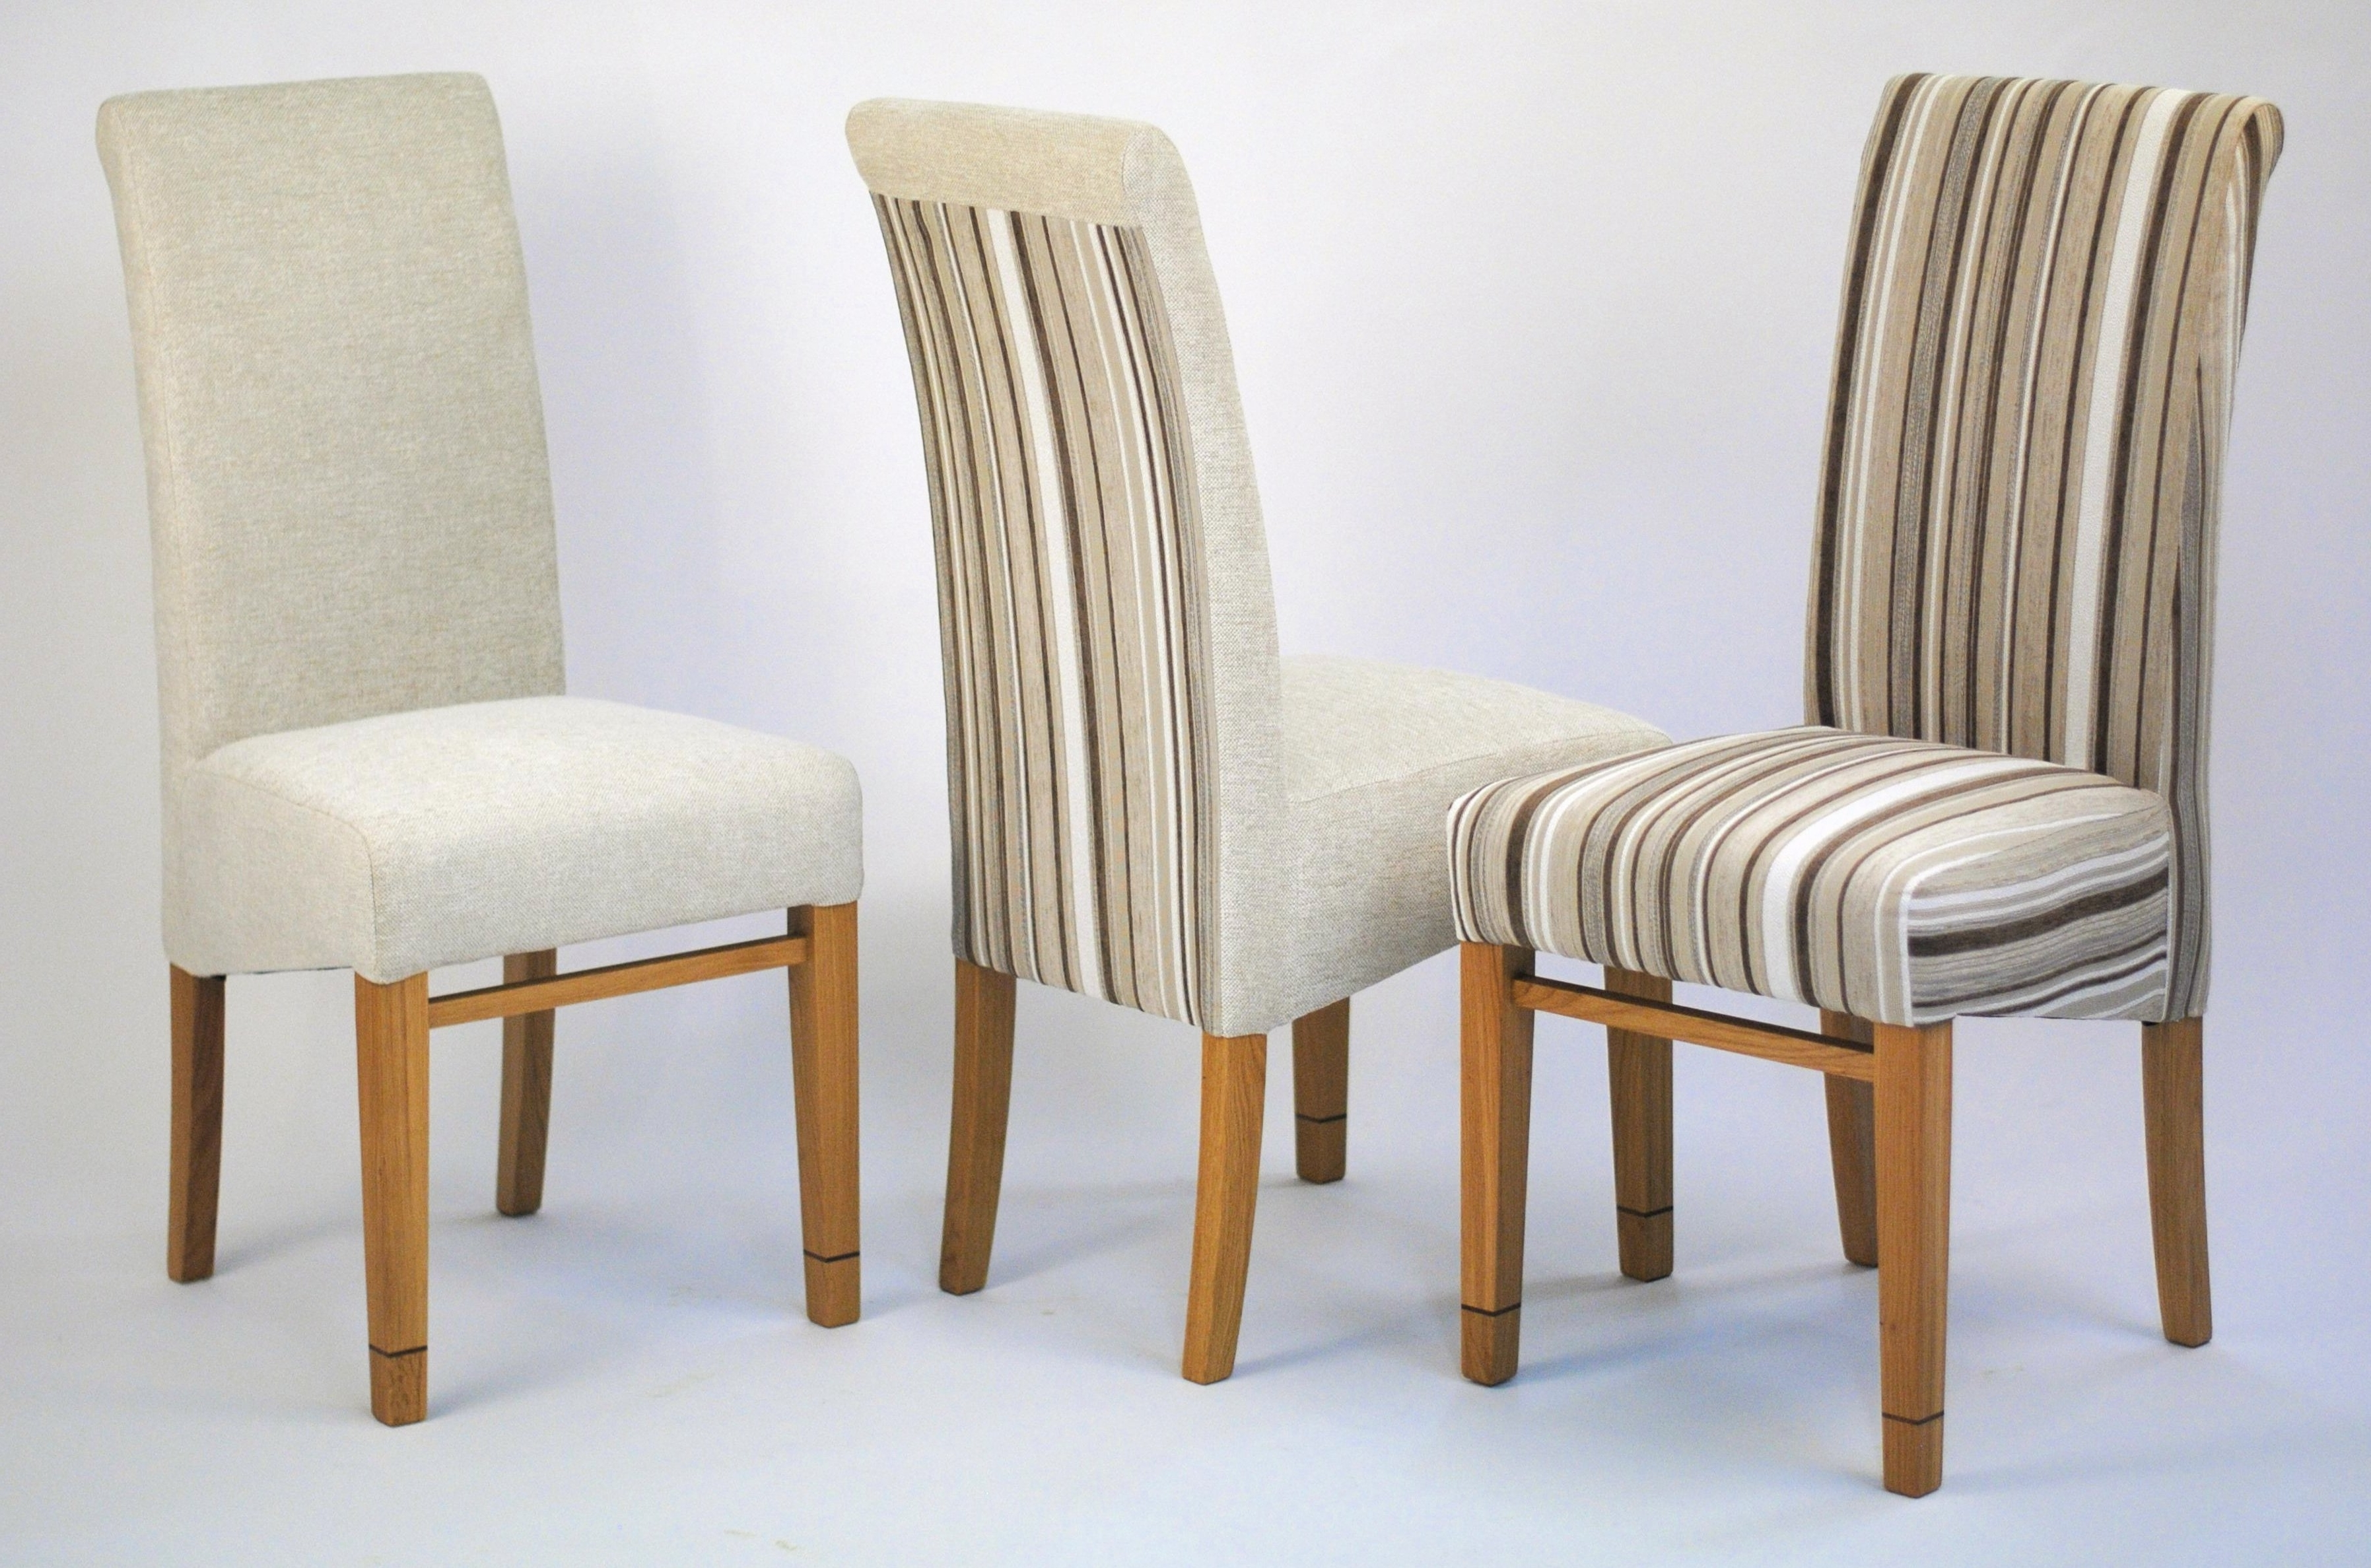 Dining Room Chairs throughout Best and Newest Bow515 Upholstered Dining Chair